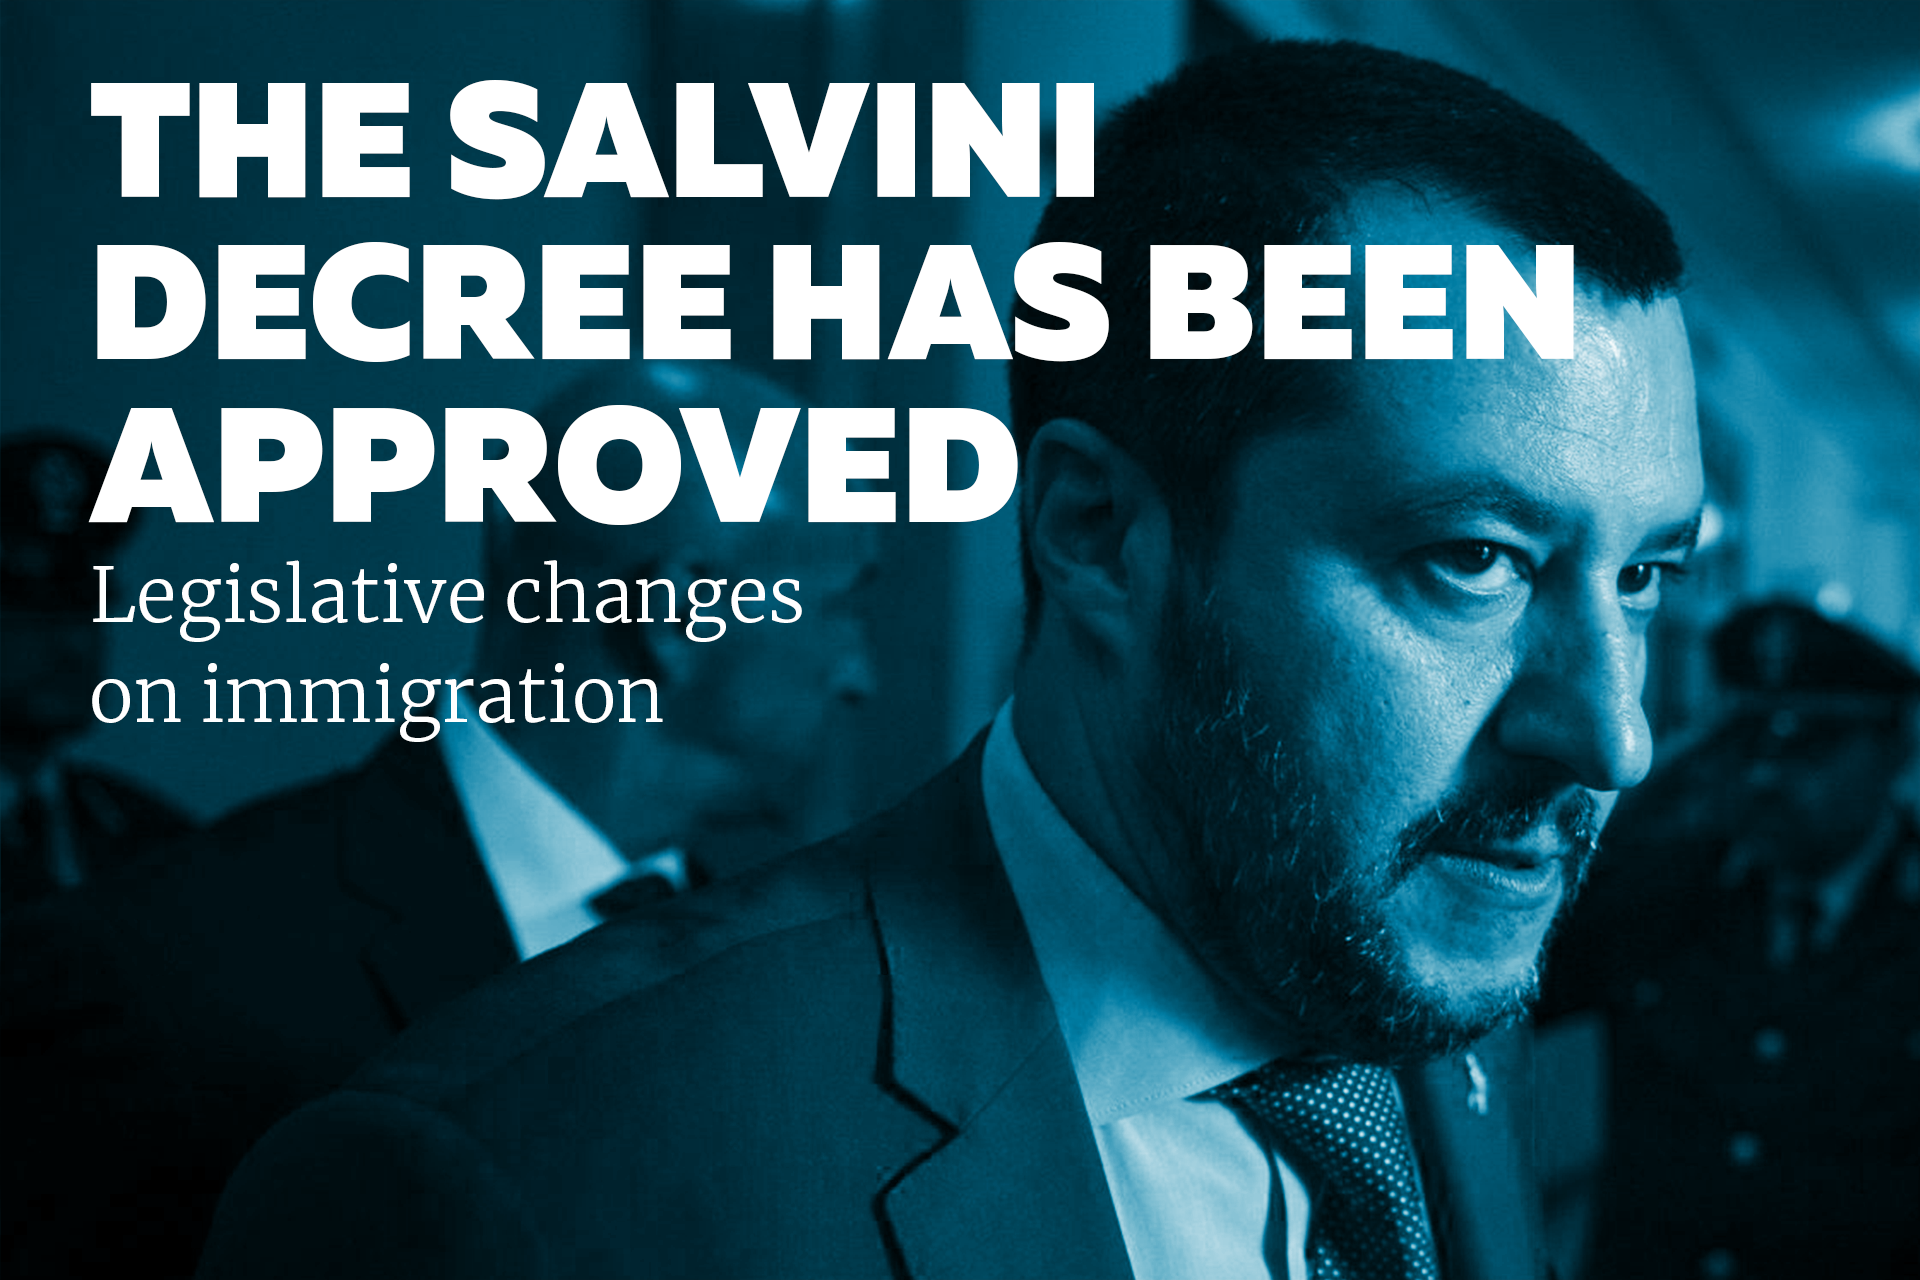 The Salvini decree has been approved: legislative changes on immigration